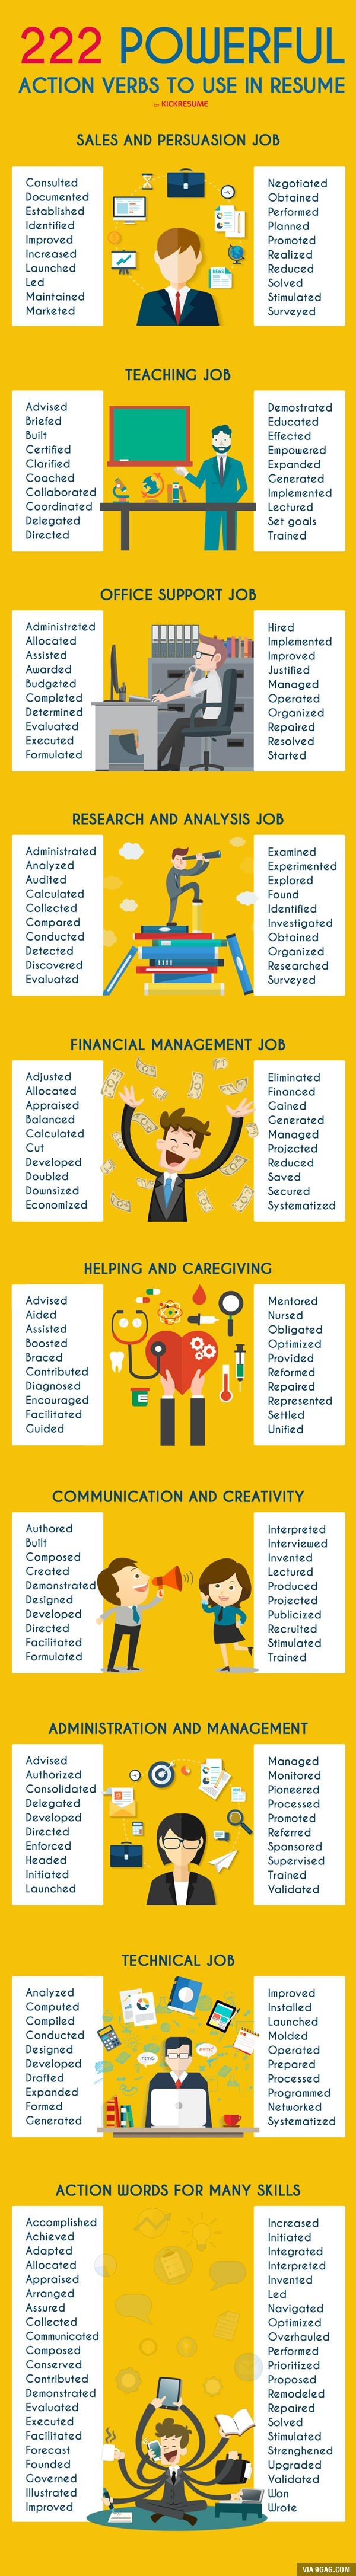 Resume Tips Action Verbs